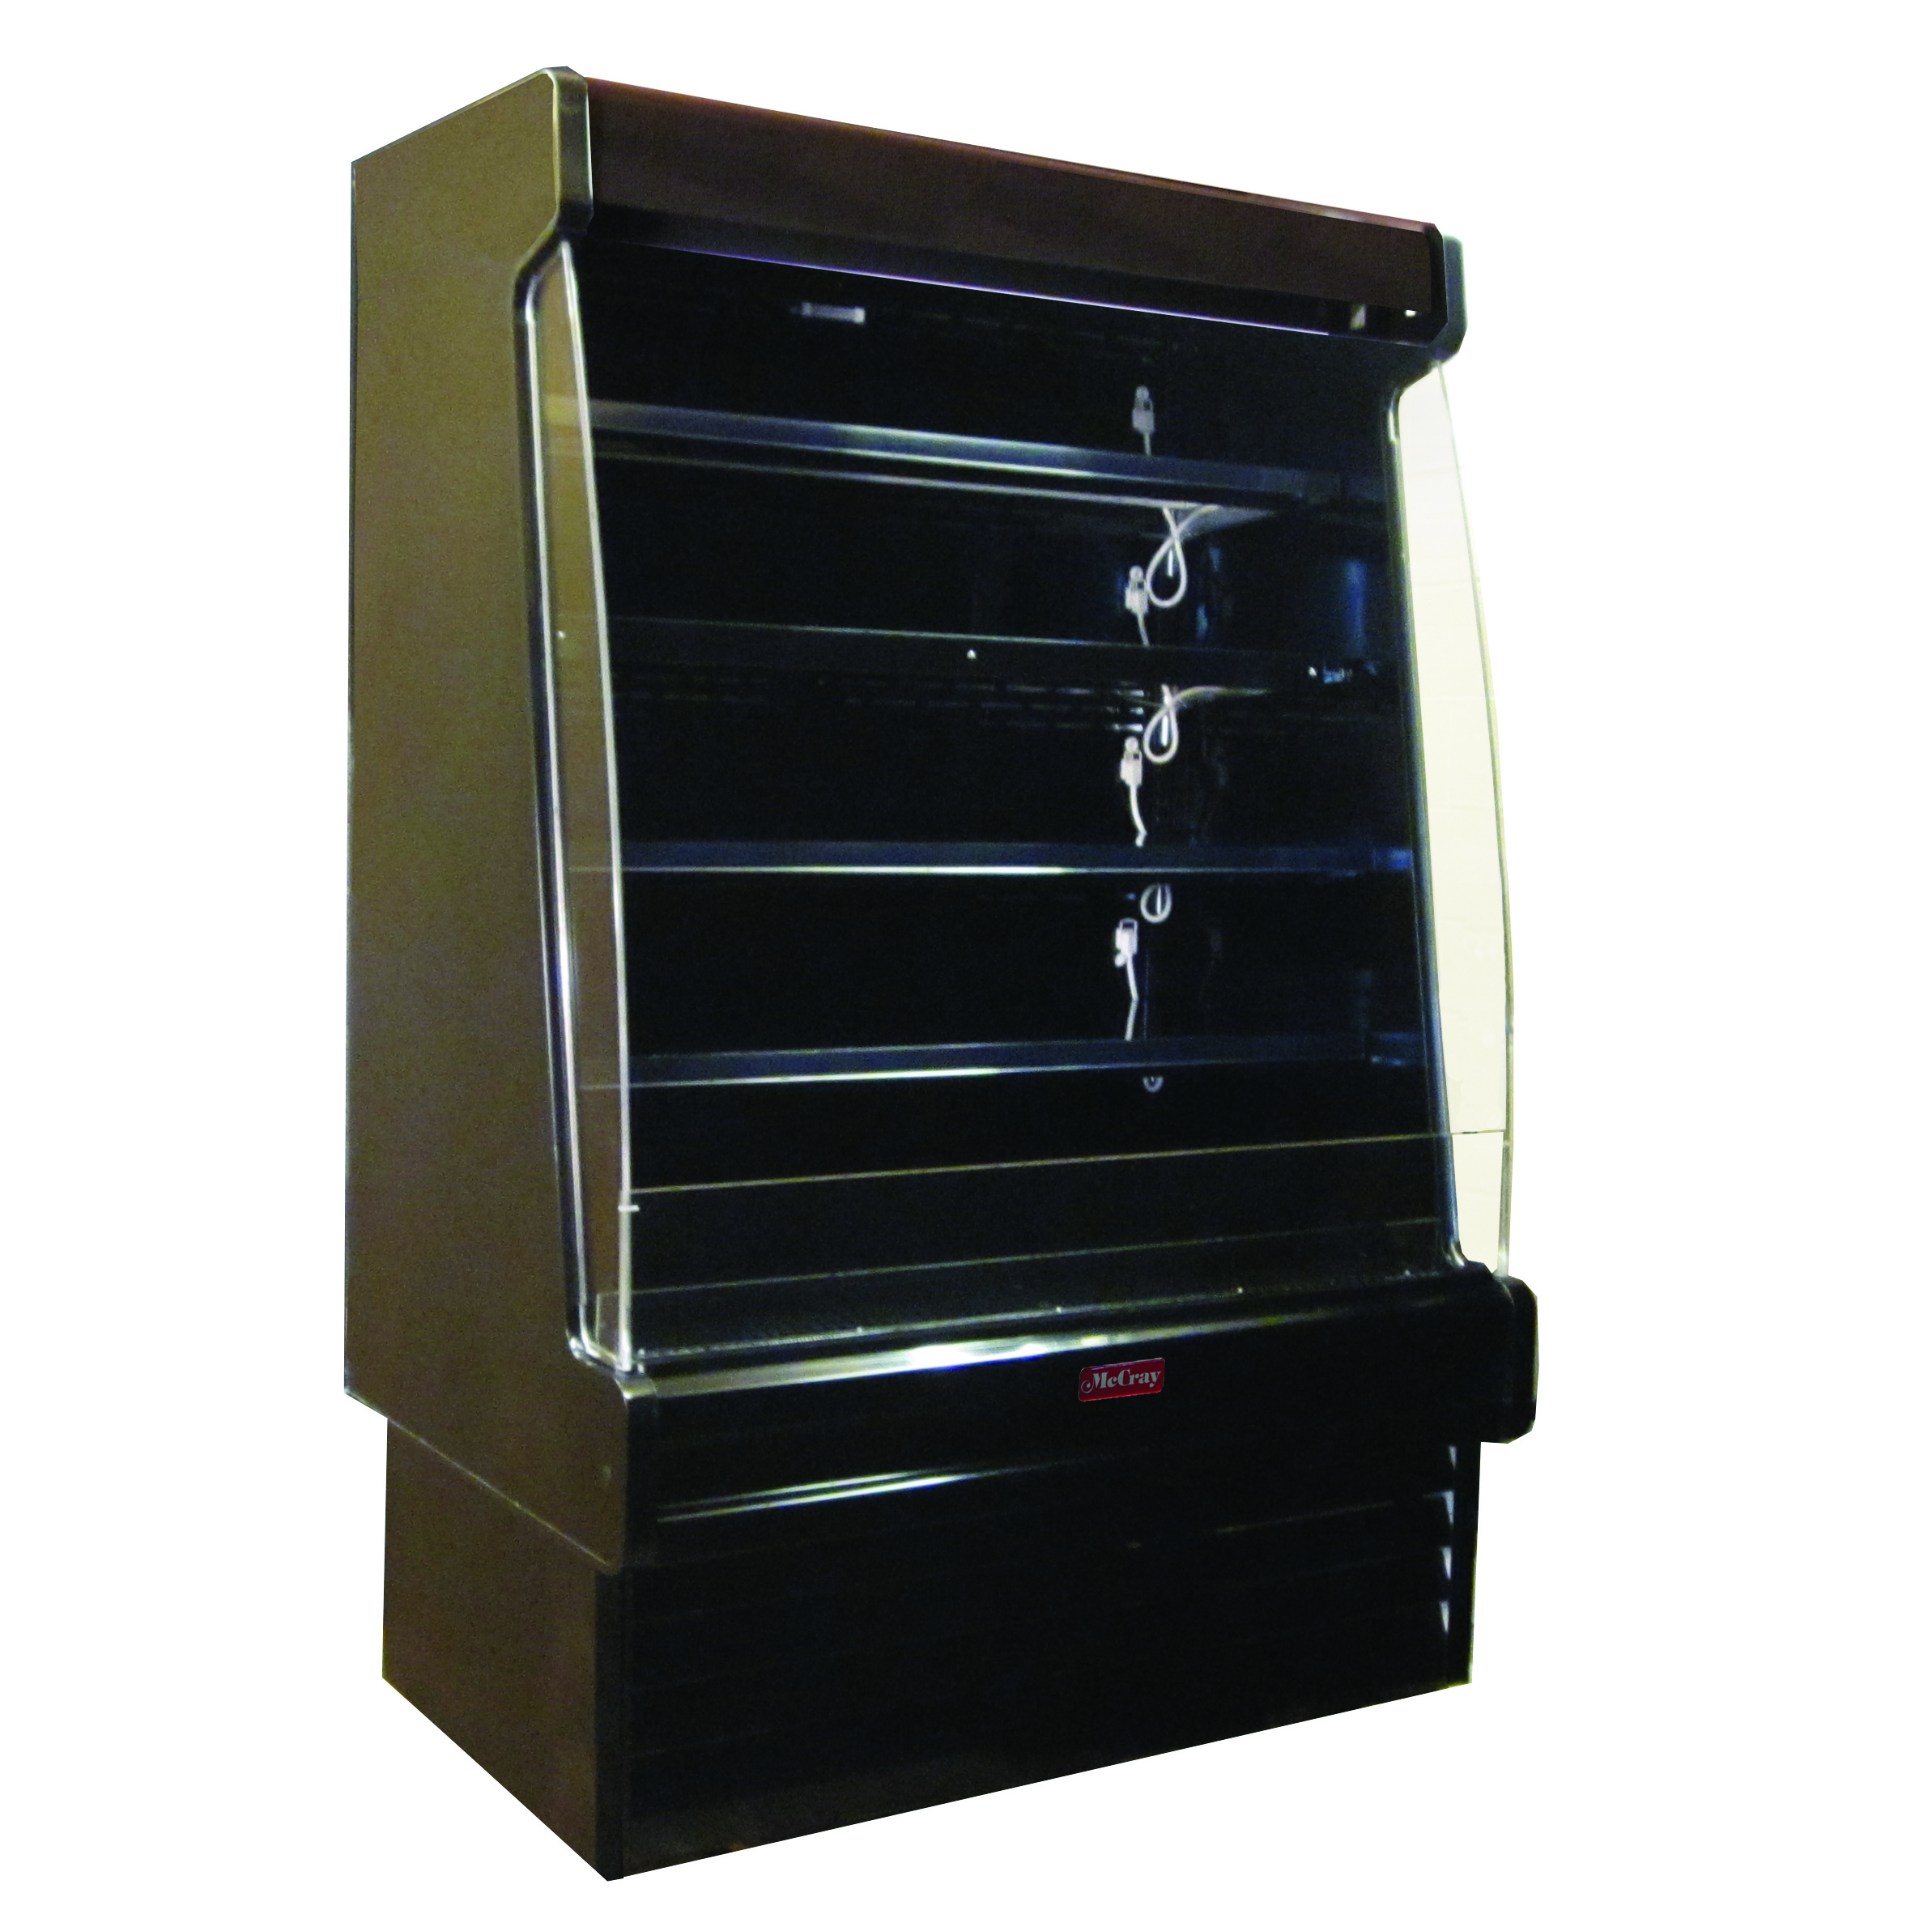 Howard-McCray R-OD35E-4S-B-LED merchandiser, open refrigerated display